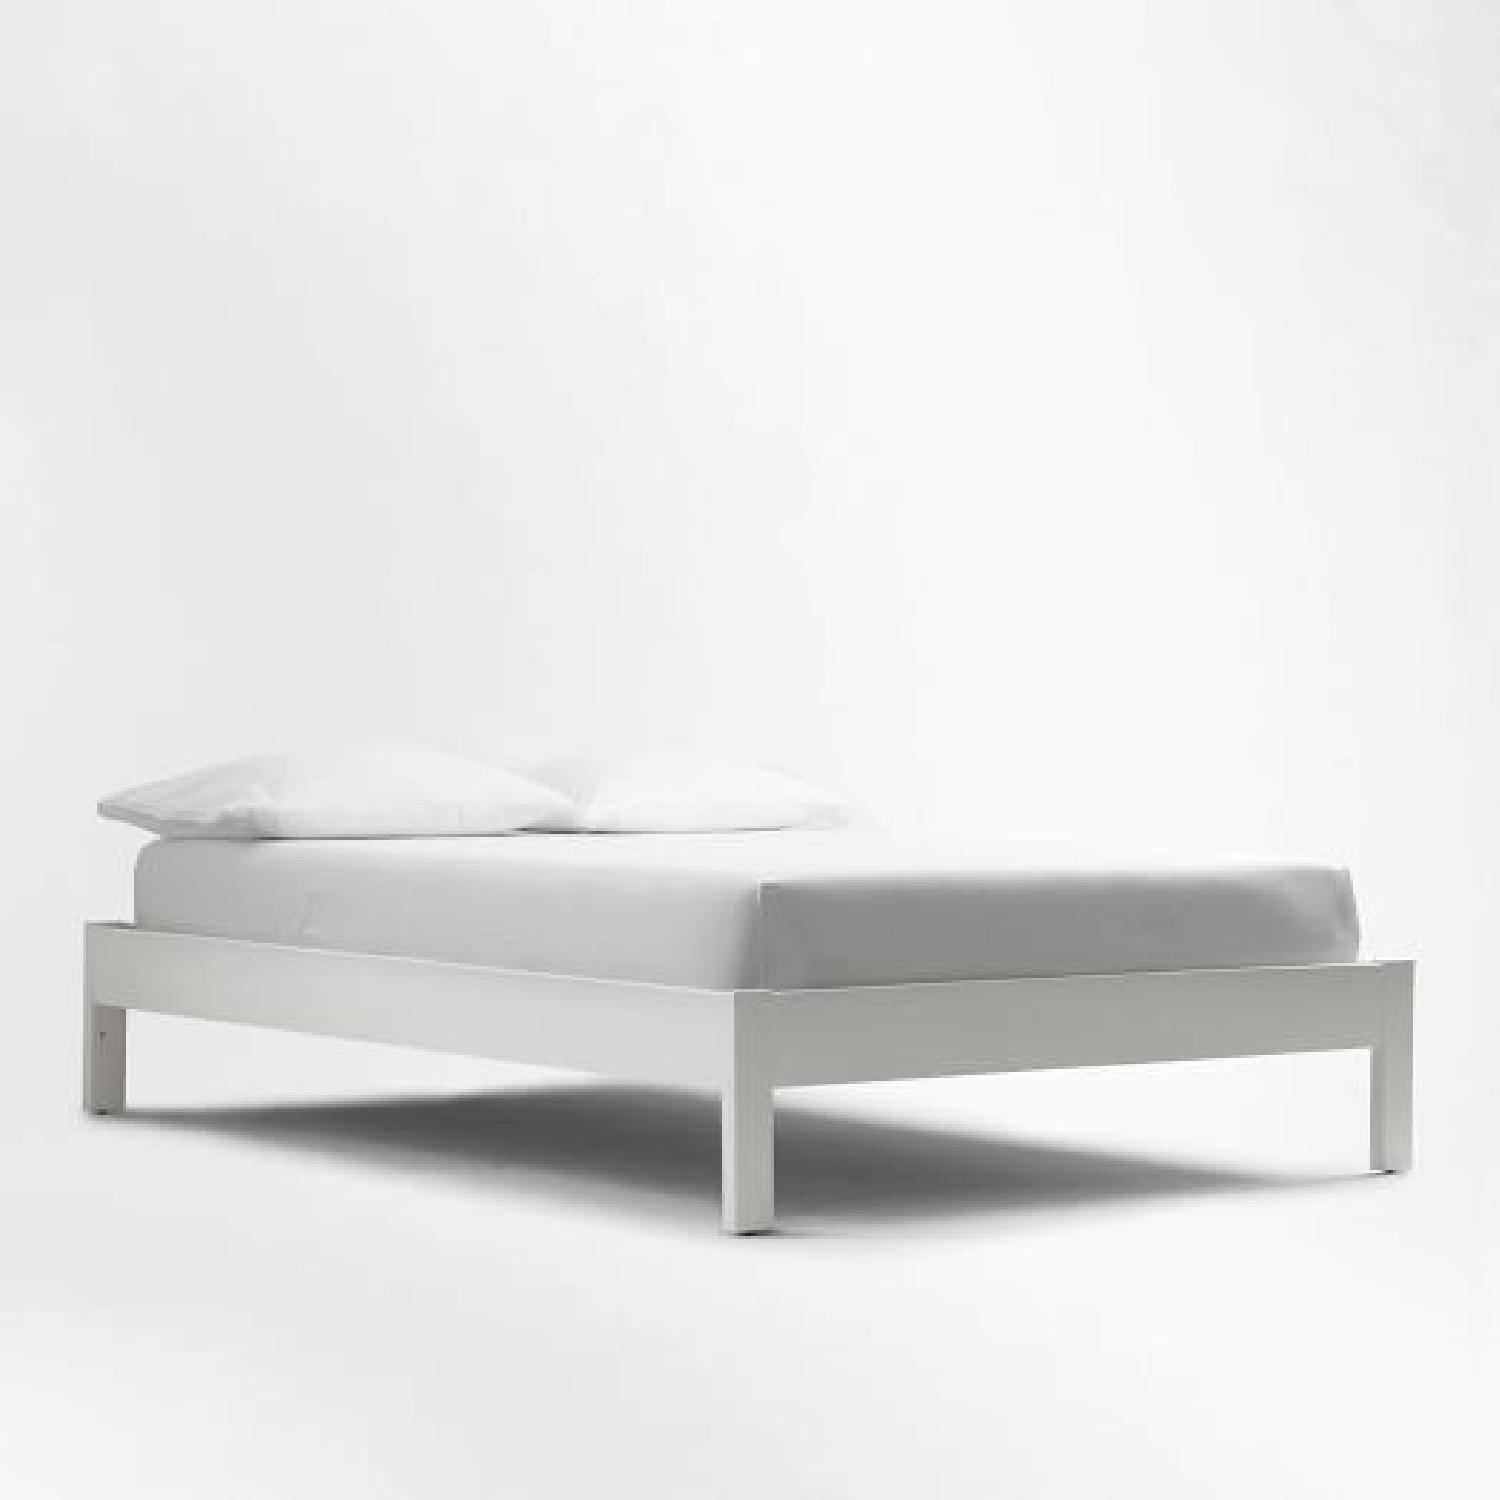 West Elm Simple Full Bed Frame in White Lacquer w/ Headboard - image-6